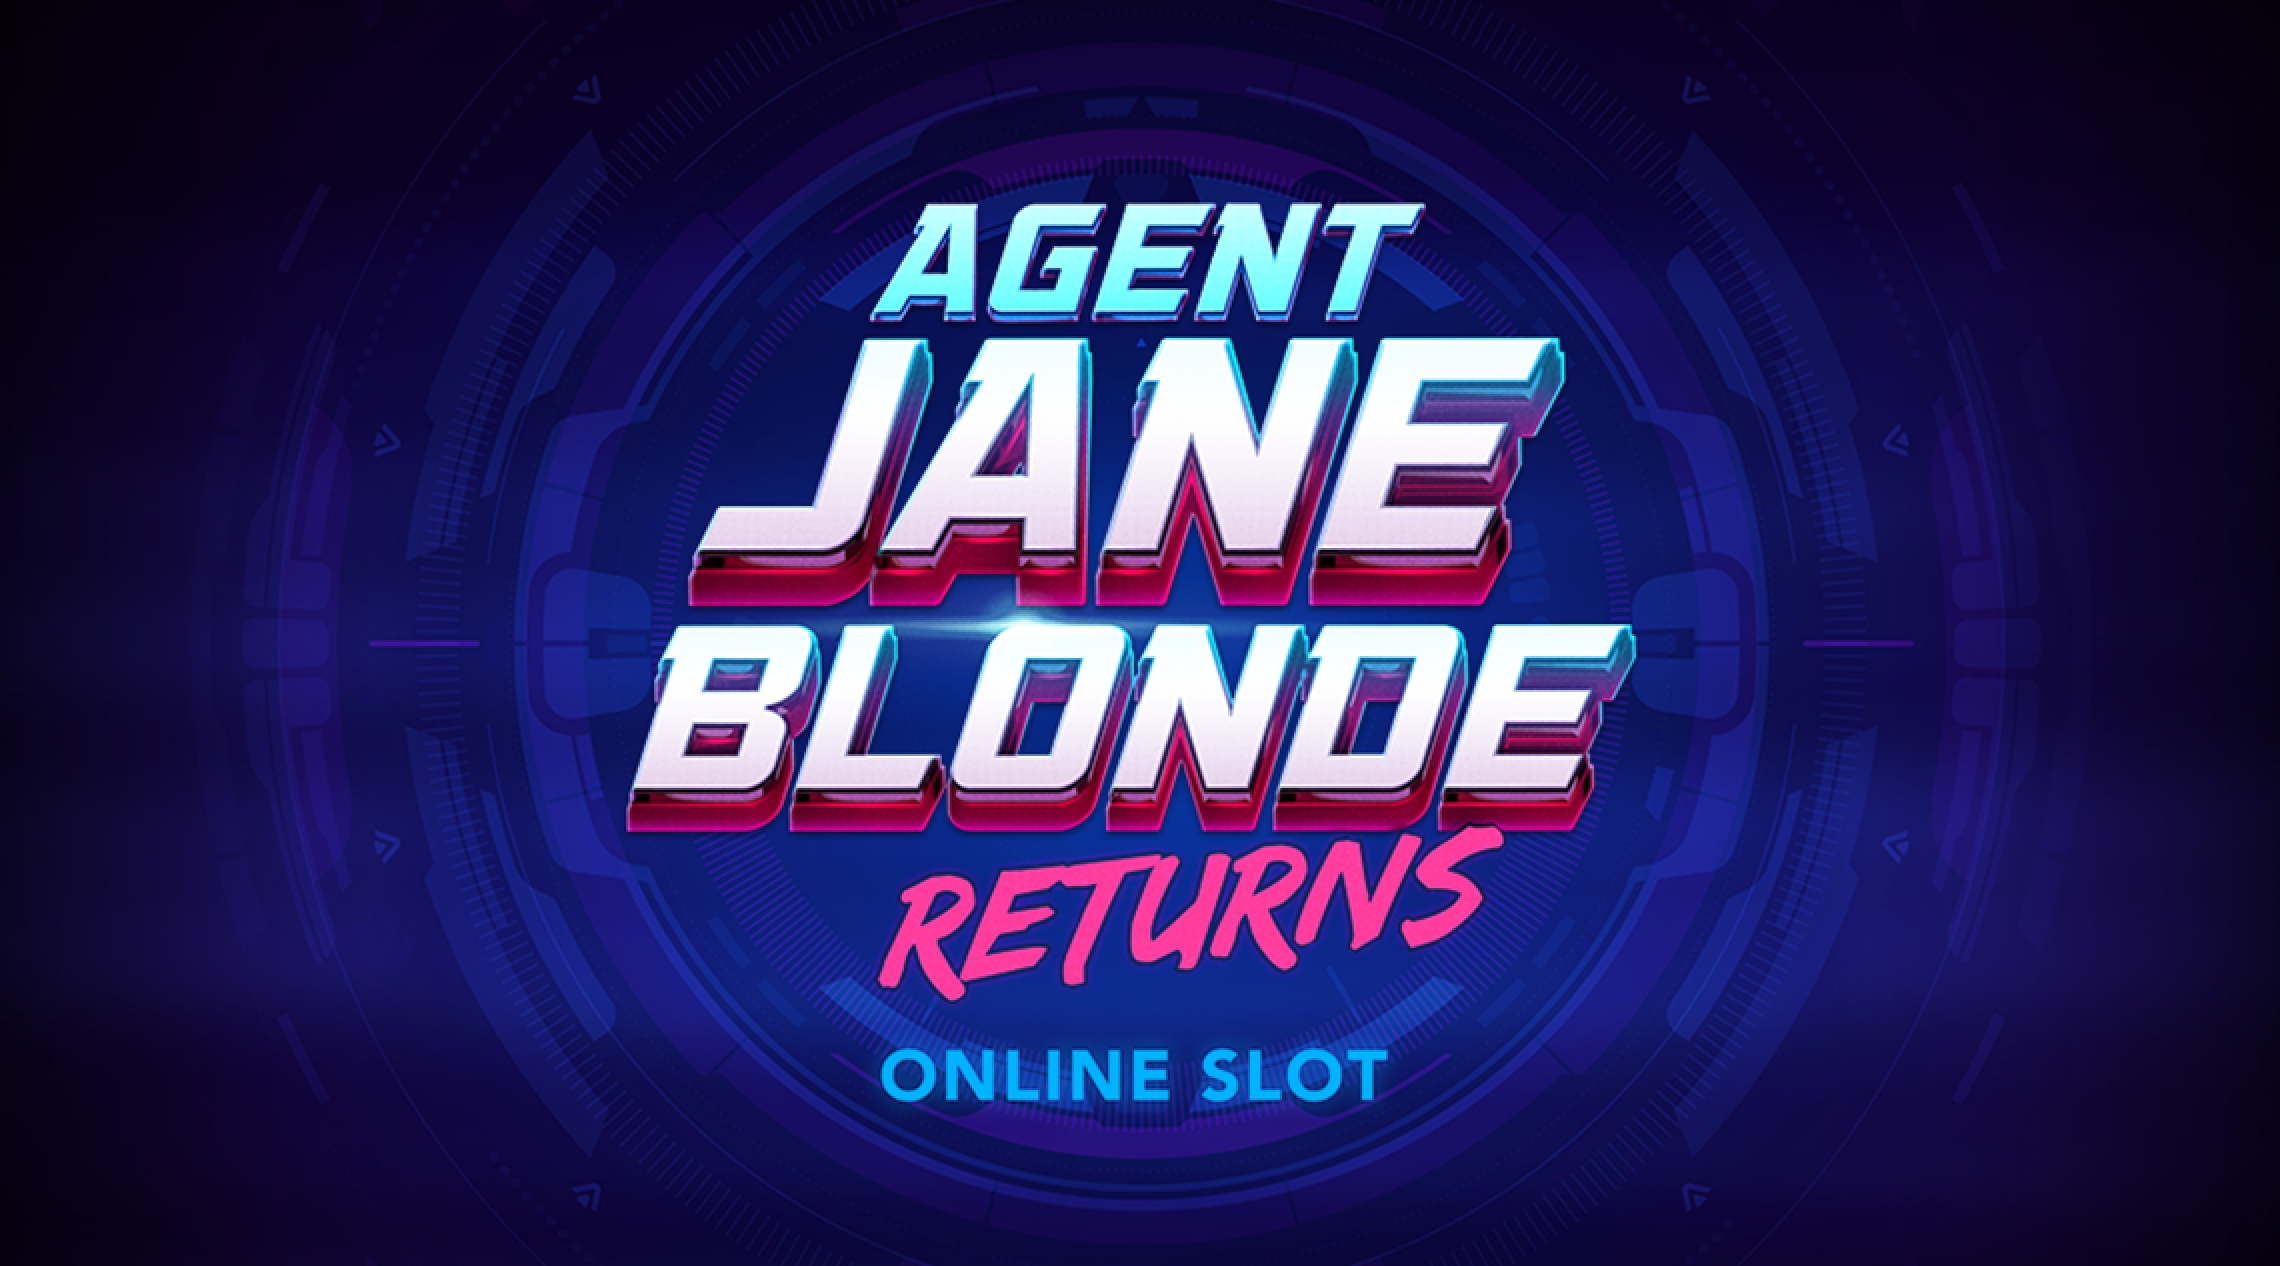 The Agent Jane Blonde Returns Online Slot Demo Game by Stormcraft Studios